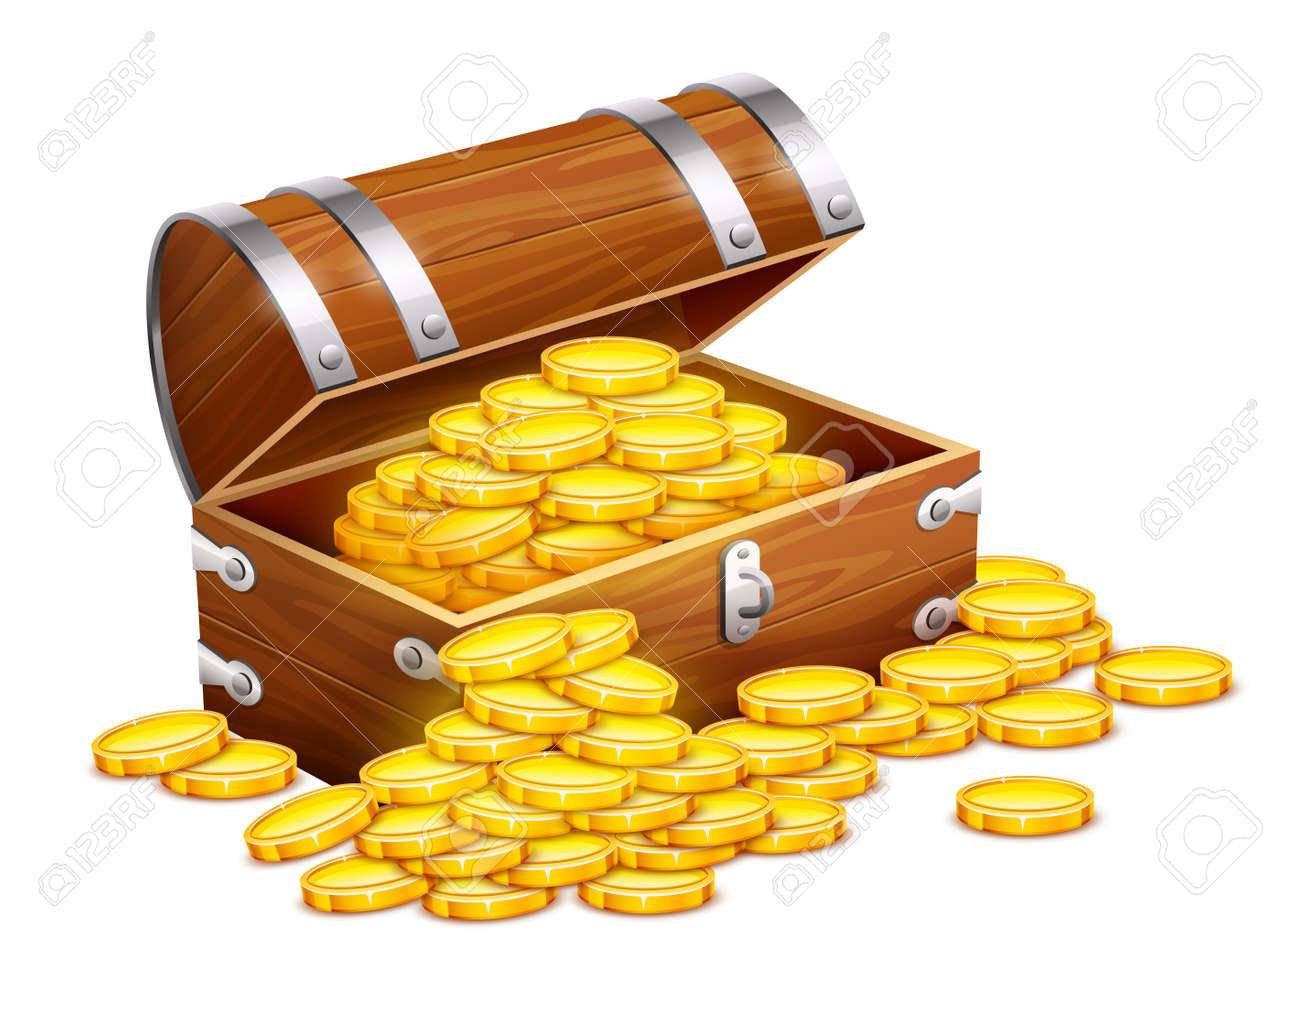 Pirates trunk chest full of gold coins treasures. Eps10 vector illustration. Isolated on white background Stock Vector - 34766869